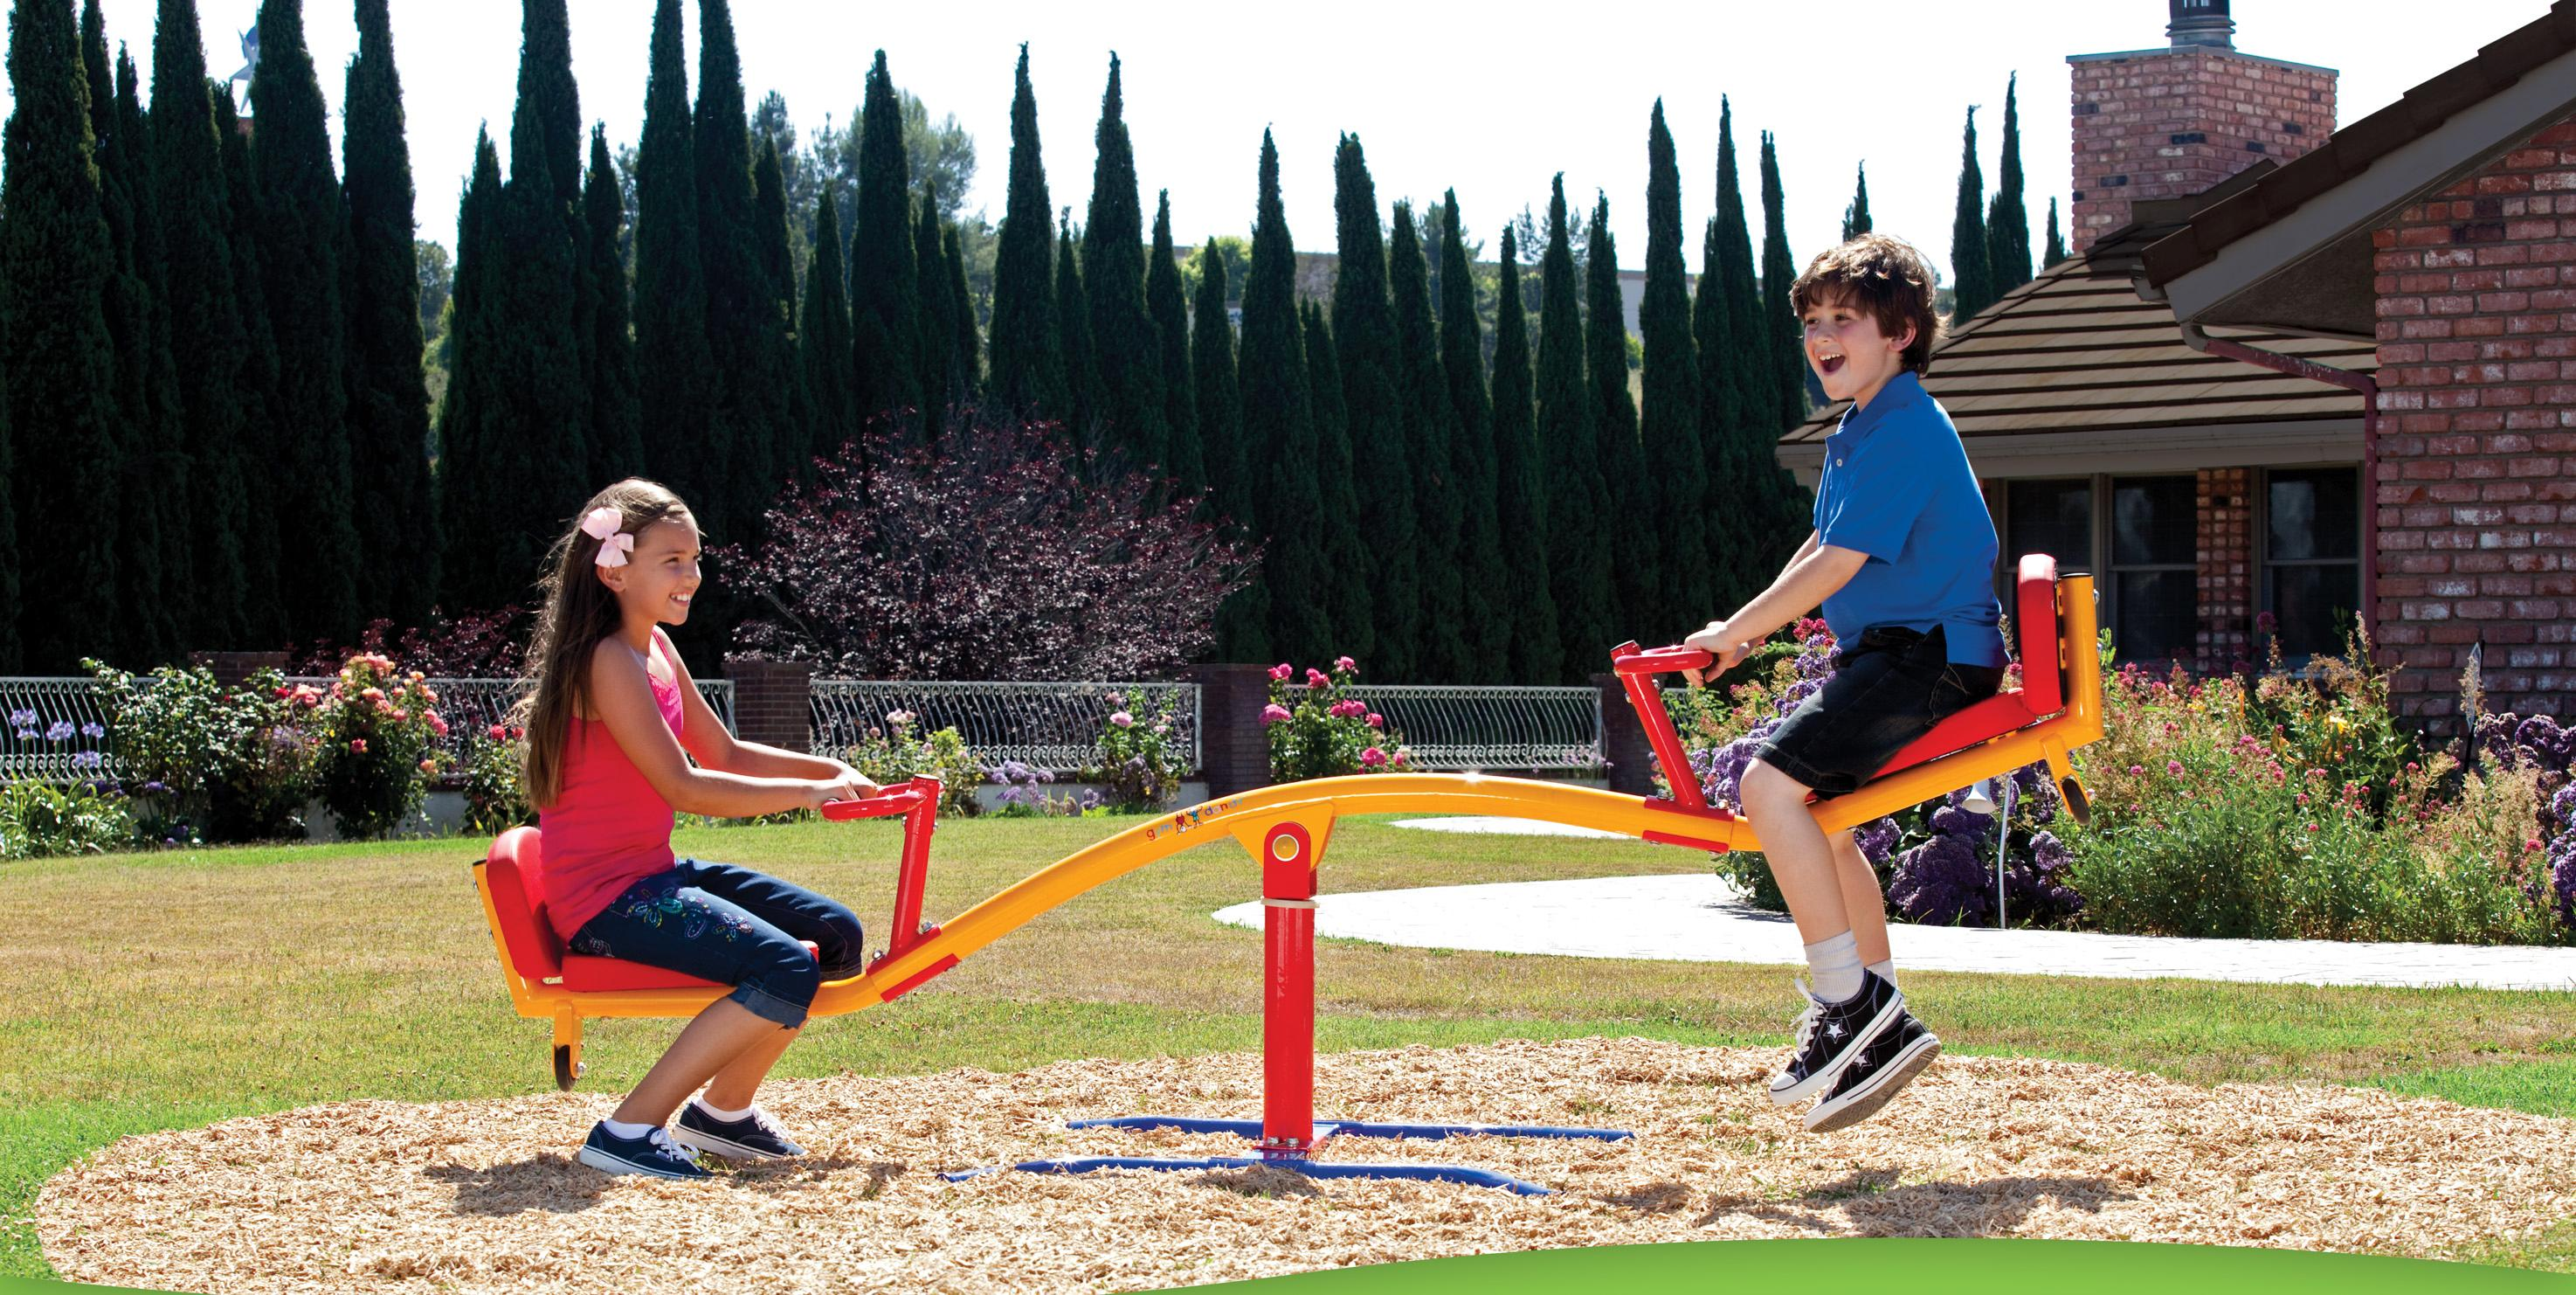 Amazon Gym Dandy Spinning Teeter Totter Impact Absorbing